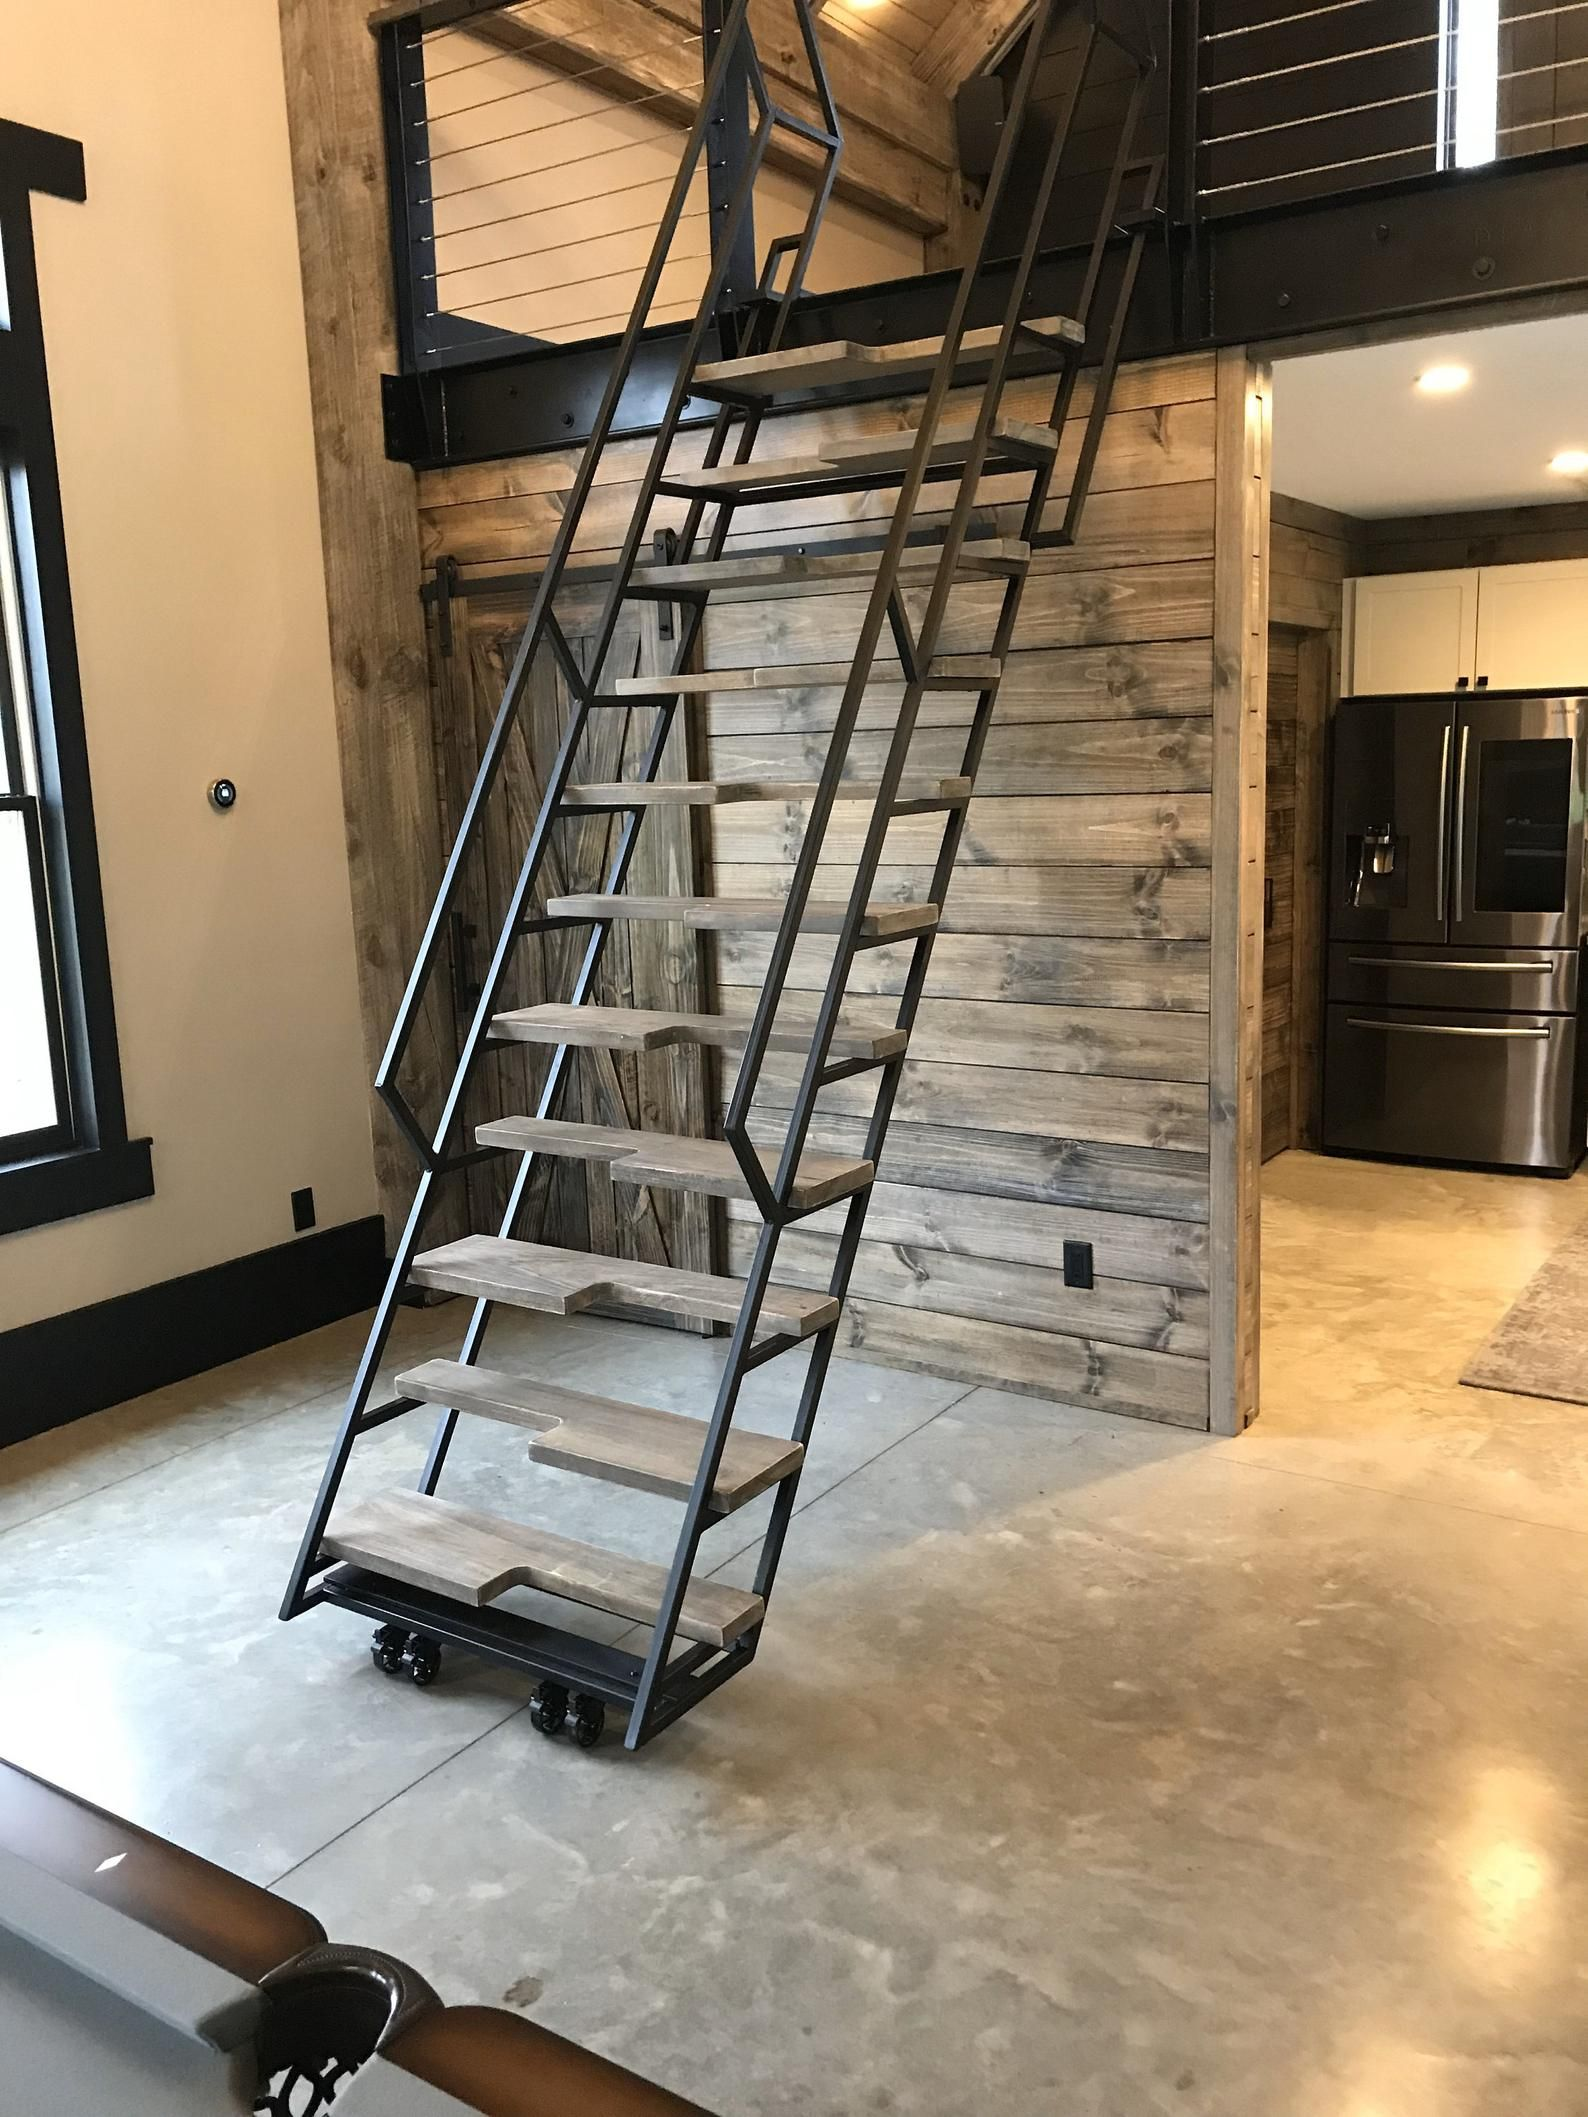 8 Ft Loft Ladder Stairs Free Shipping To Your Door In 2020 Loft Ladder Tiny House Stairs Retractable Stairs